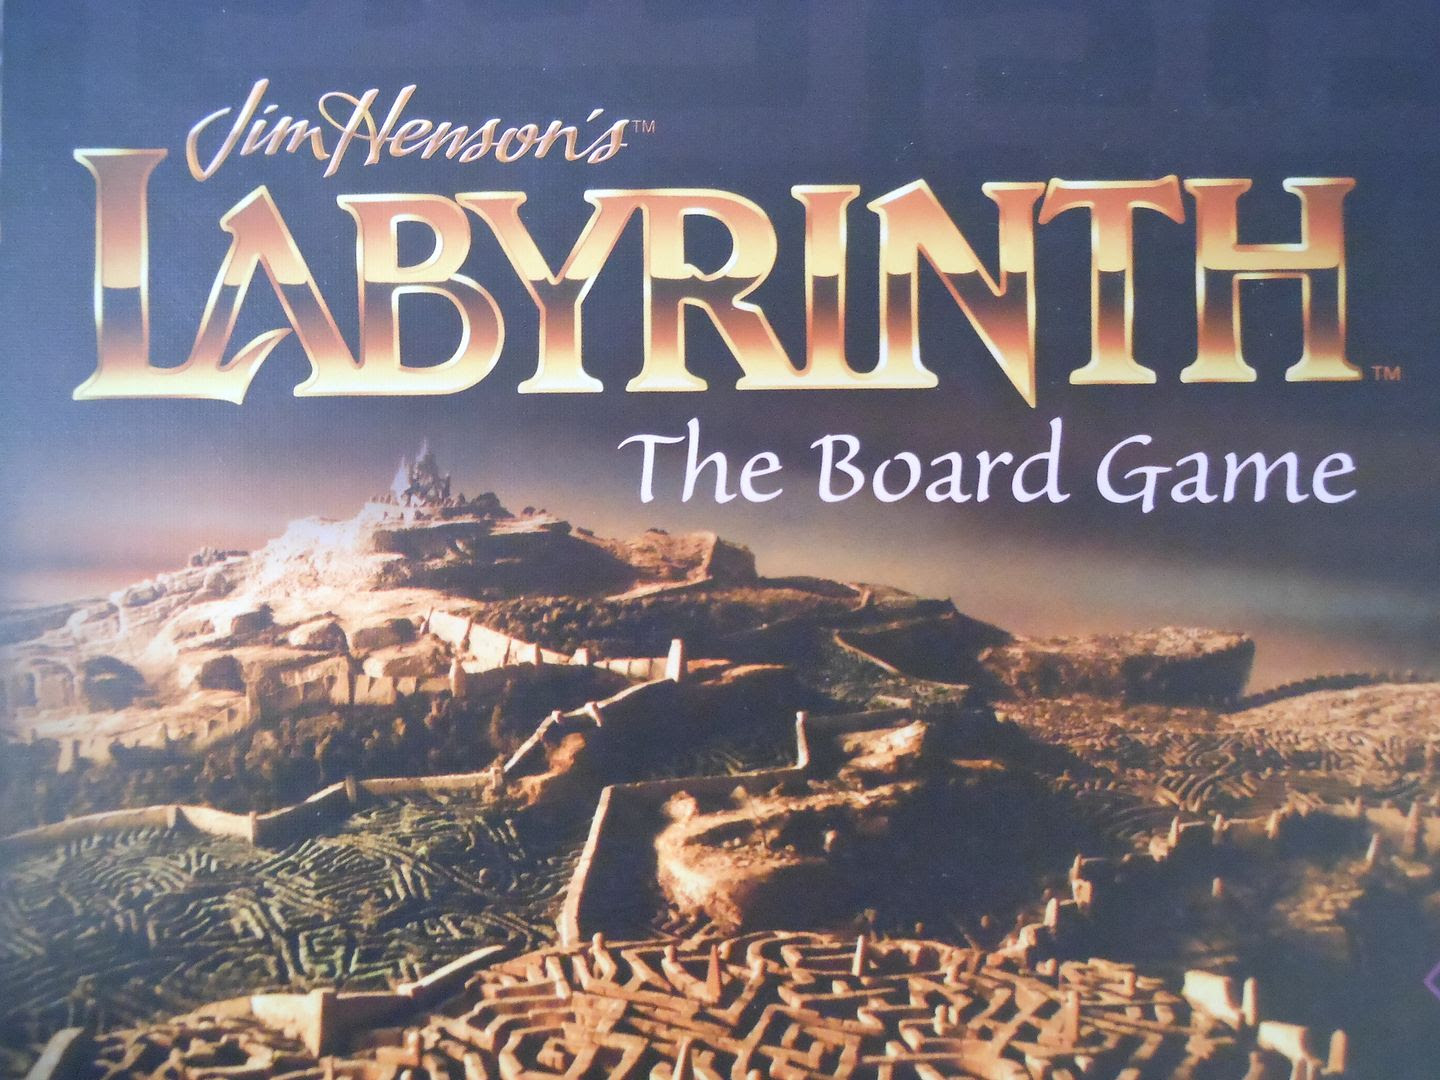 The box art for Jim Henson's Labyrinth: The Board Game, showing the titular maze.